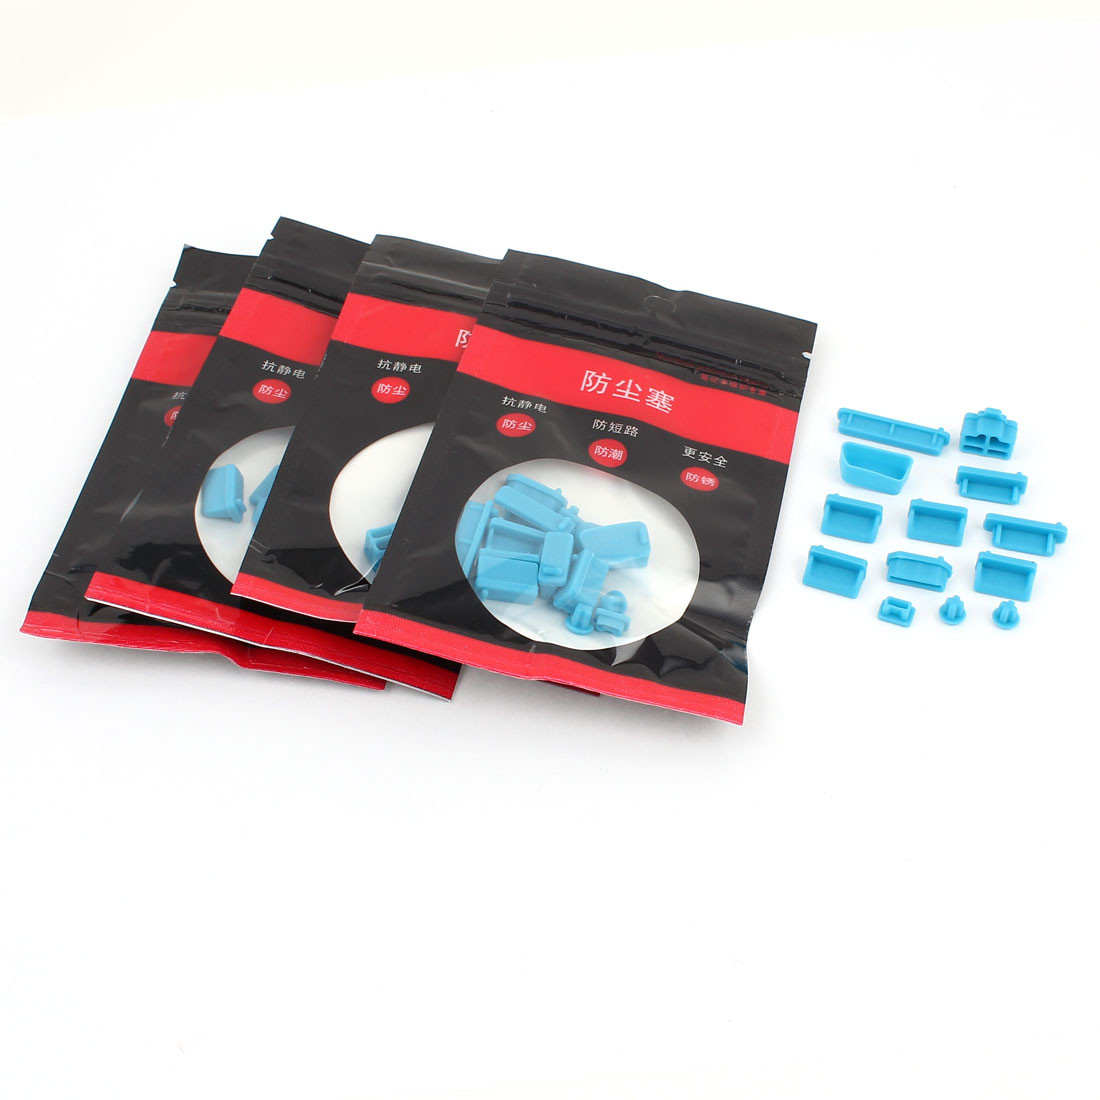 5 Set 13 in 1 Blue Silicon Anti Dust Connector Cover Stopper for MacBook Pro Air Laptop Notebook